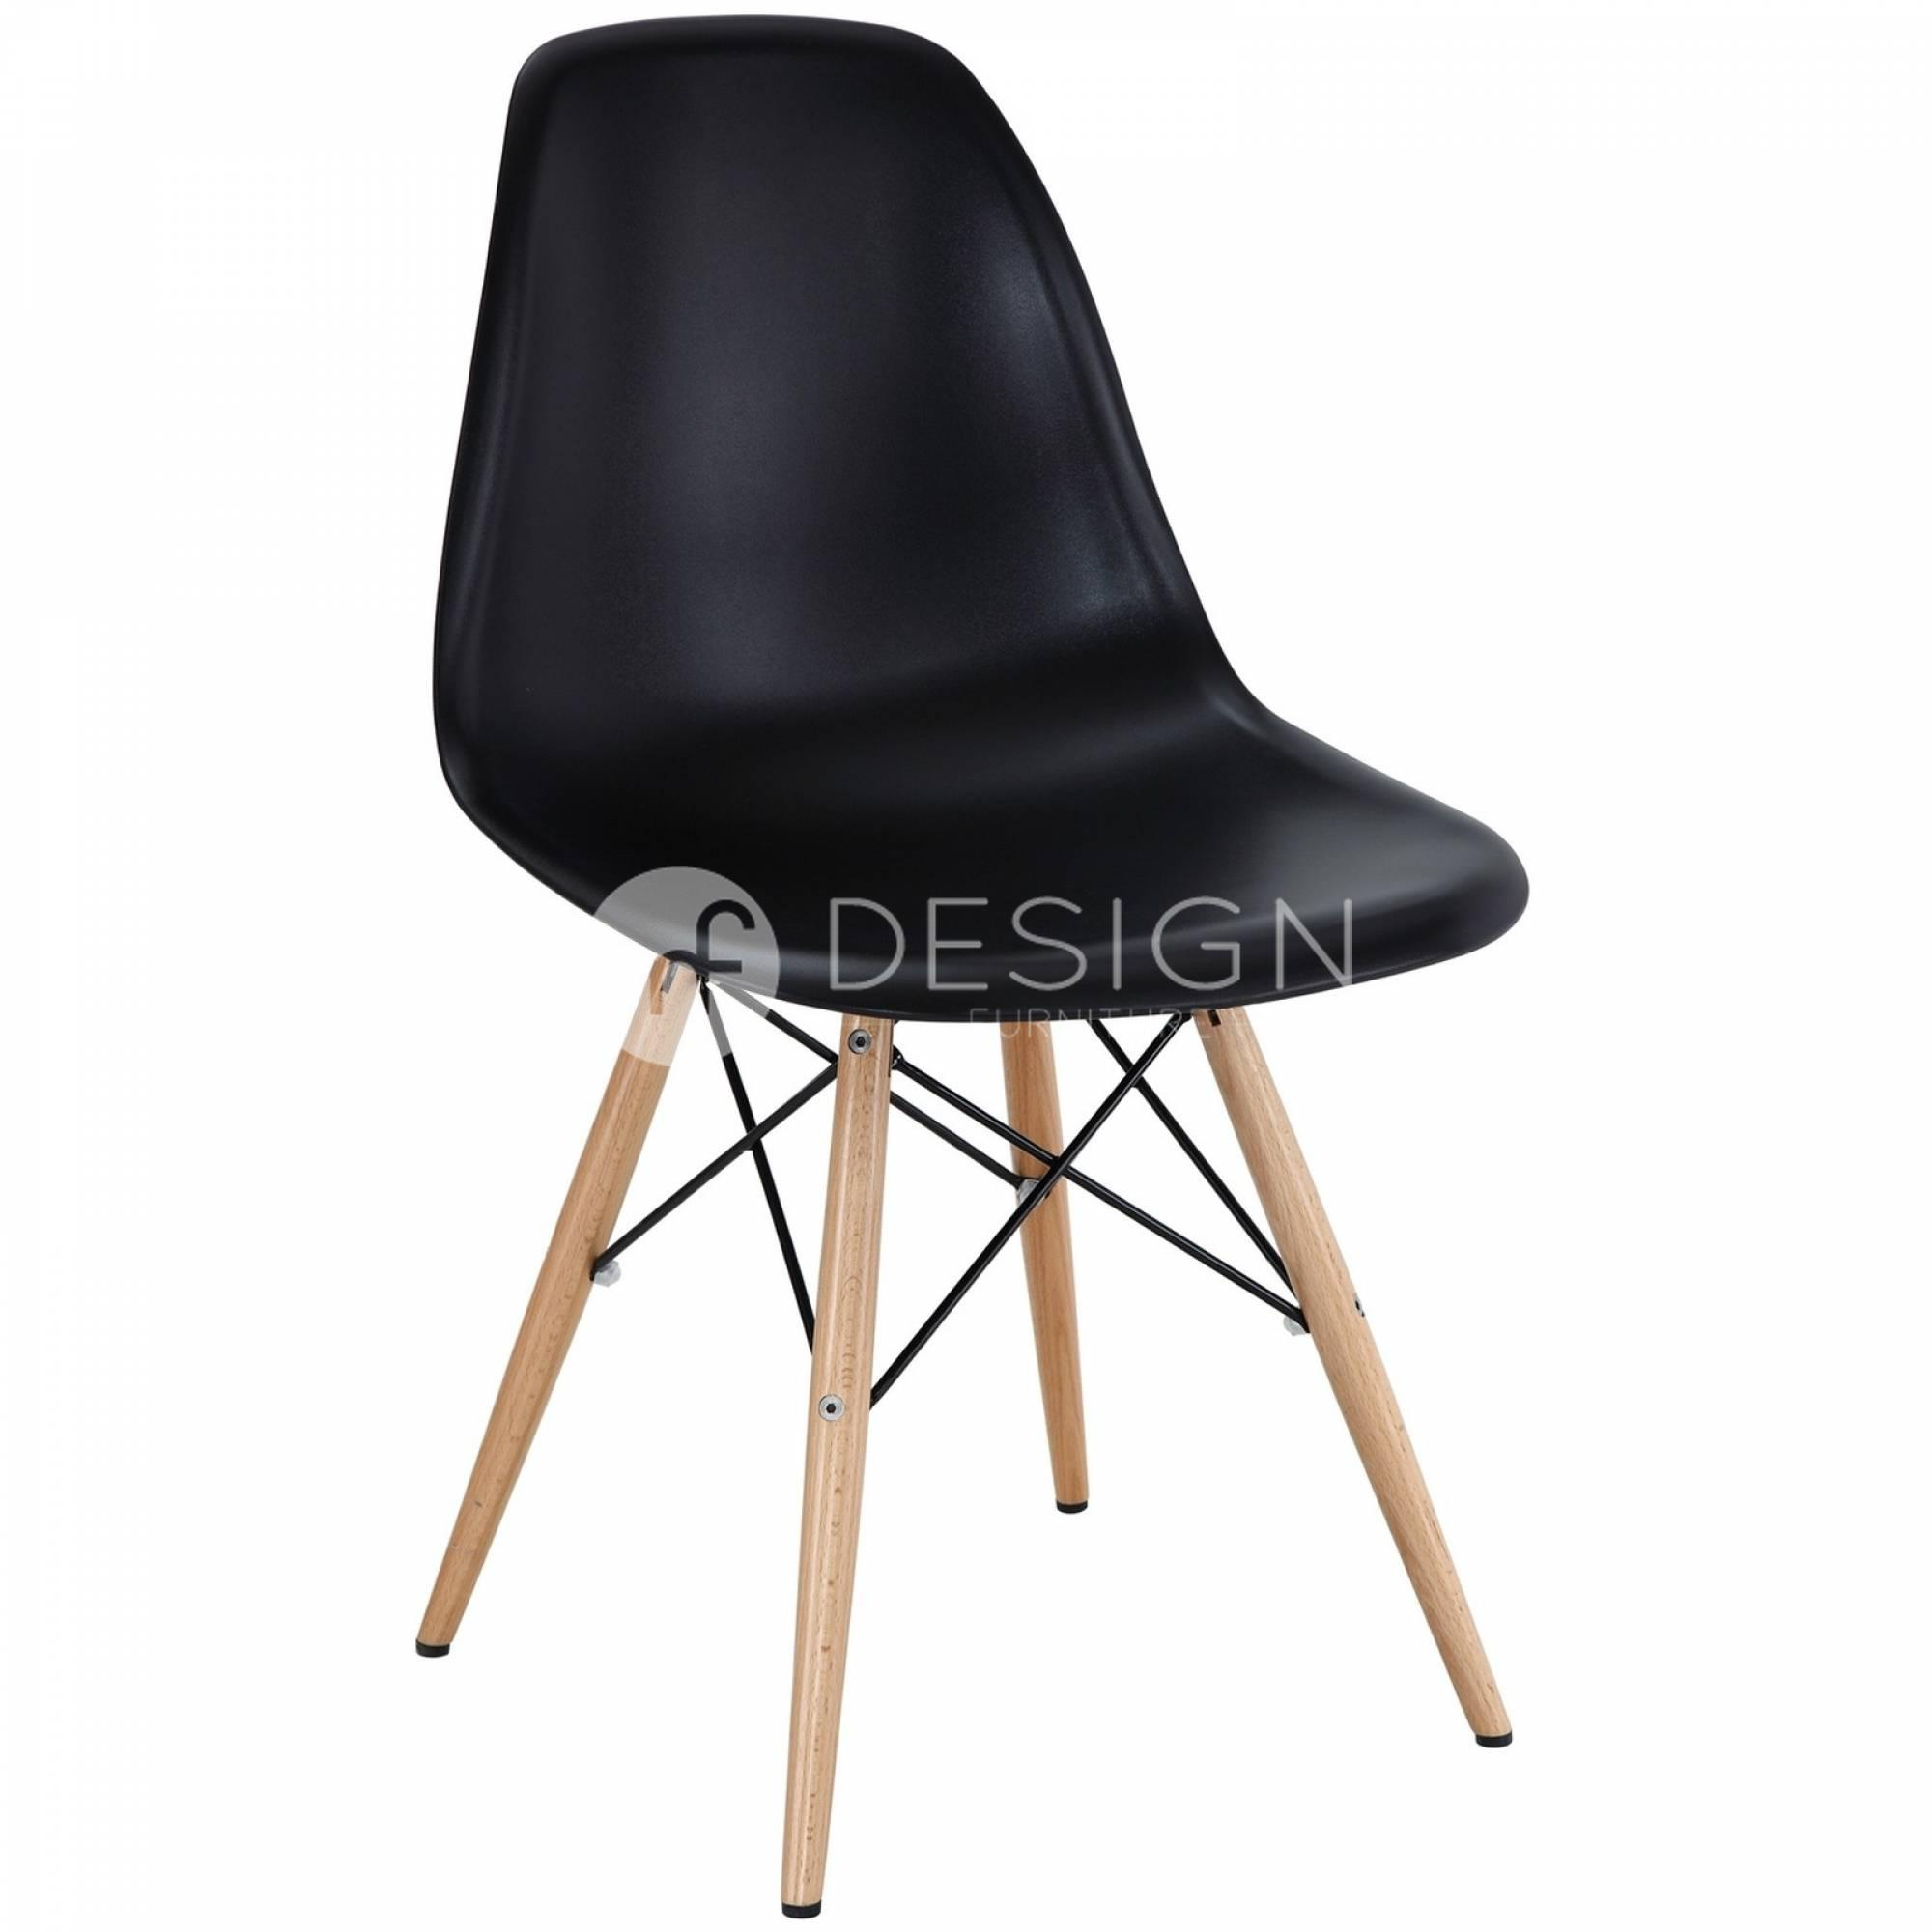 Mf design eames replica designer cha end 5 27 2019 1 31 pm for Designer furniture replica malaysia